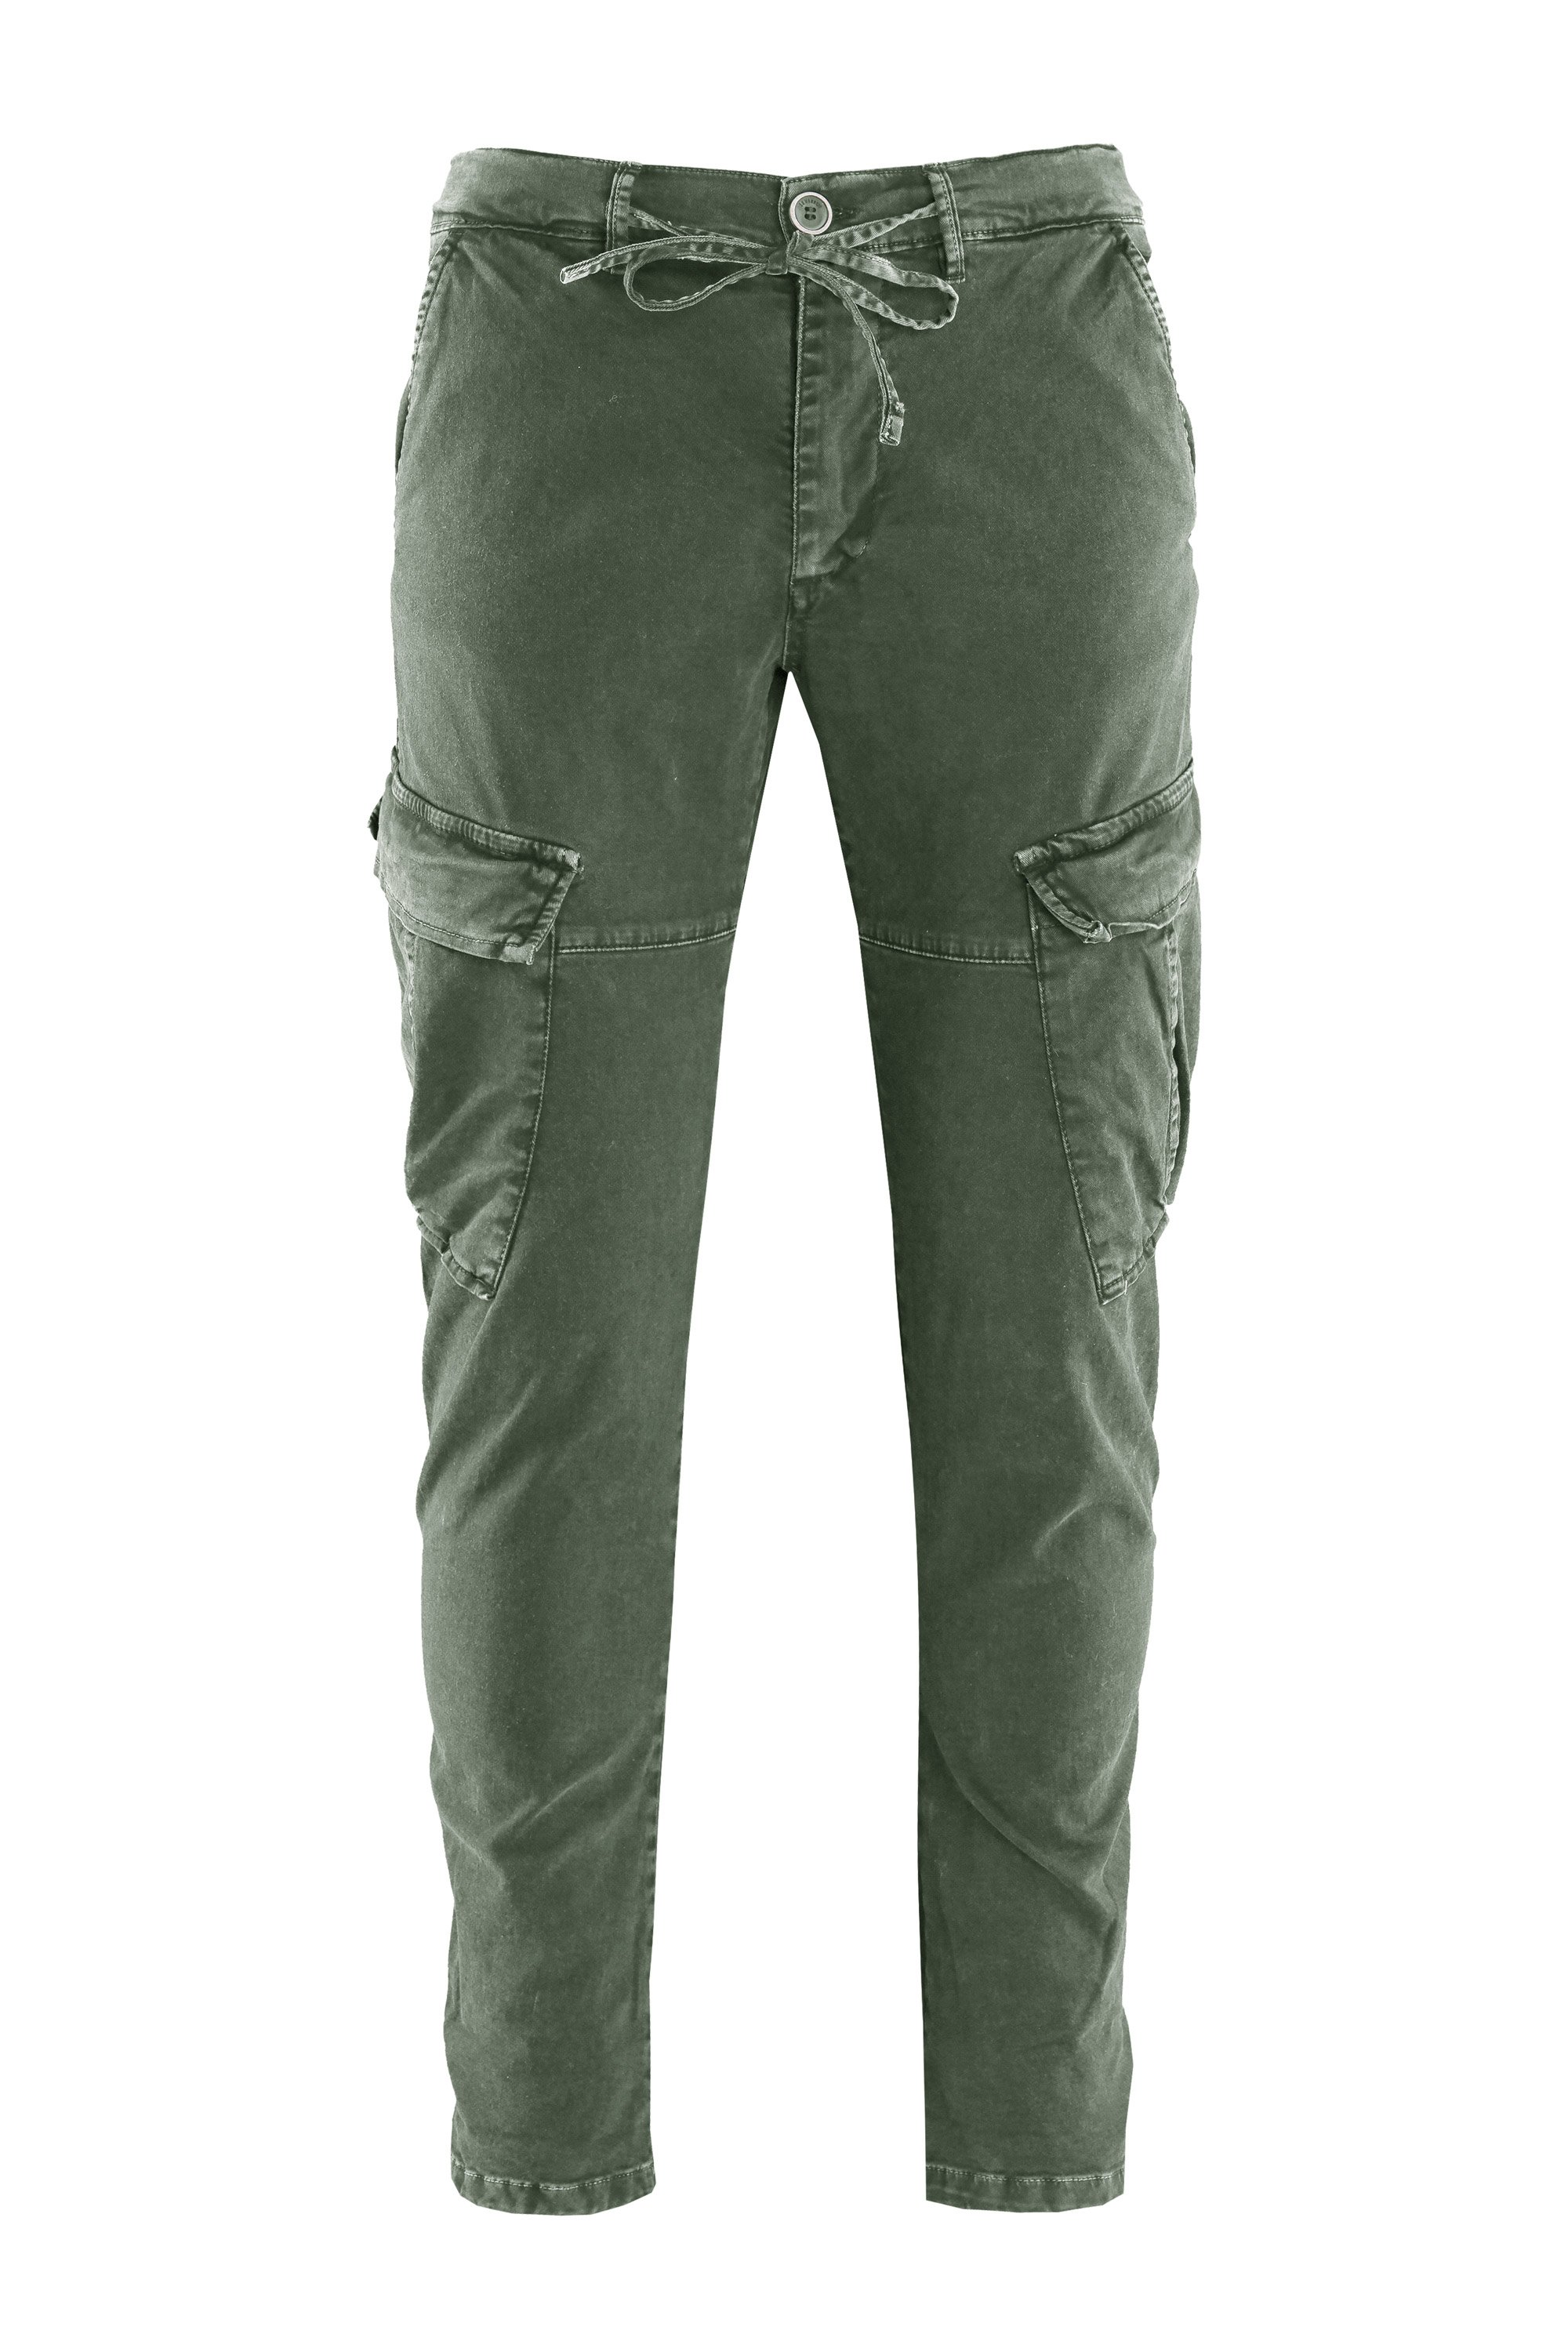 Nam pants cotton gabardine cargo pockets